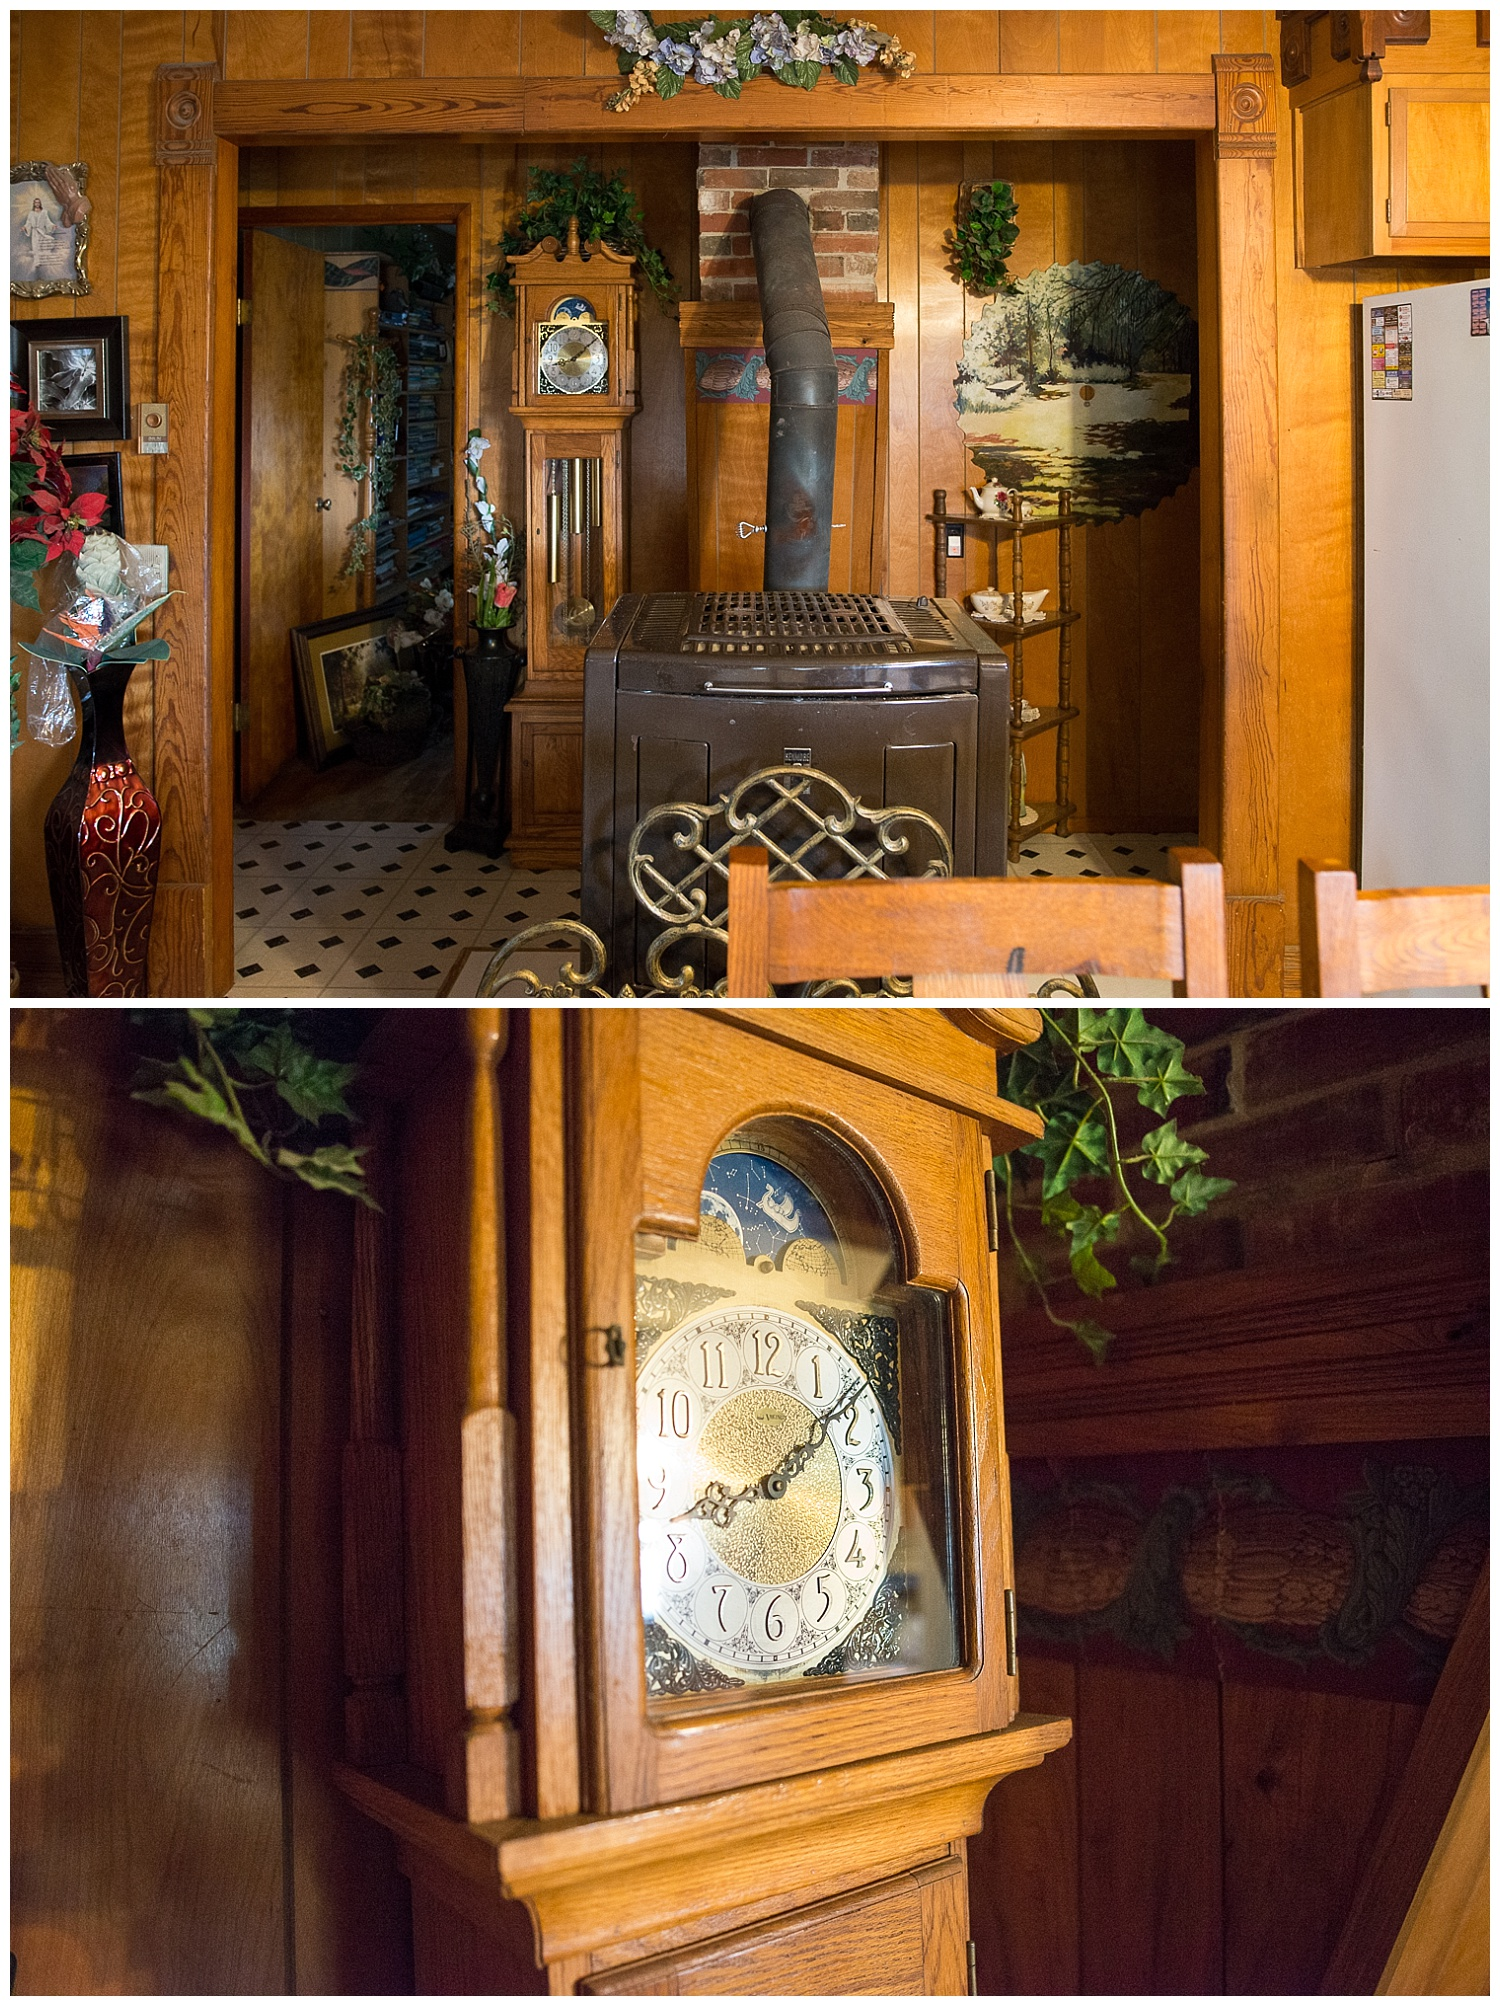 The show kitchen at the front of the house. This once coal but now wood stove does a fine job of heating the entire house and this Grandfather clock was impressively his Sophomore class project.